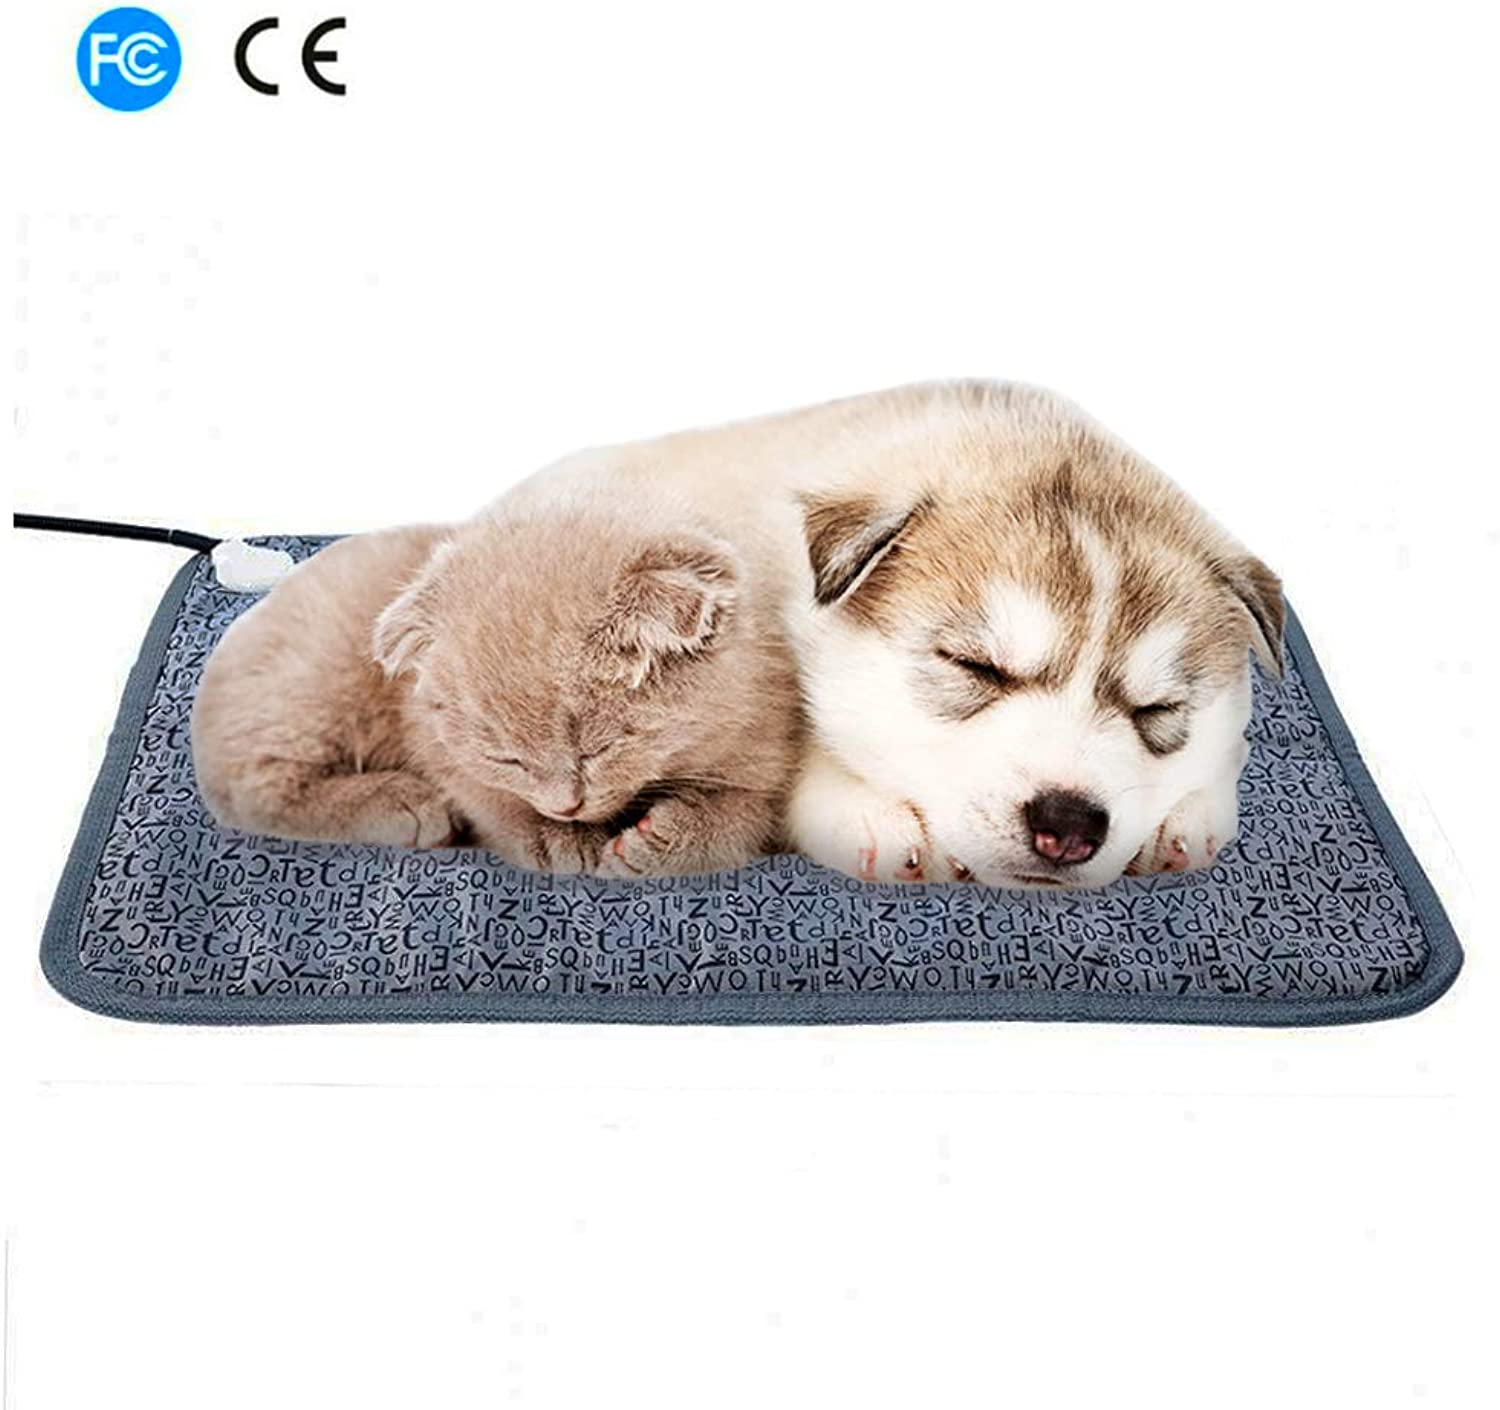 MKDcom Large Pet Heating Pad, Electric Heat Pad for Dogs, Cats, Rabbits, Indoor Waterproof Warming Mat with Chew Resistant Steel 28.3 X 18.9 inches